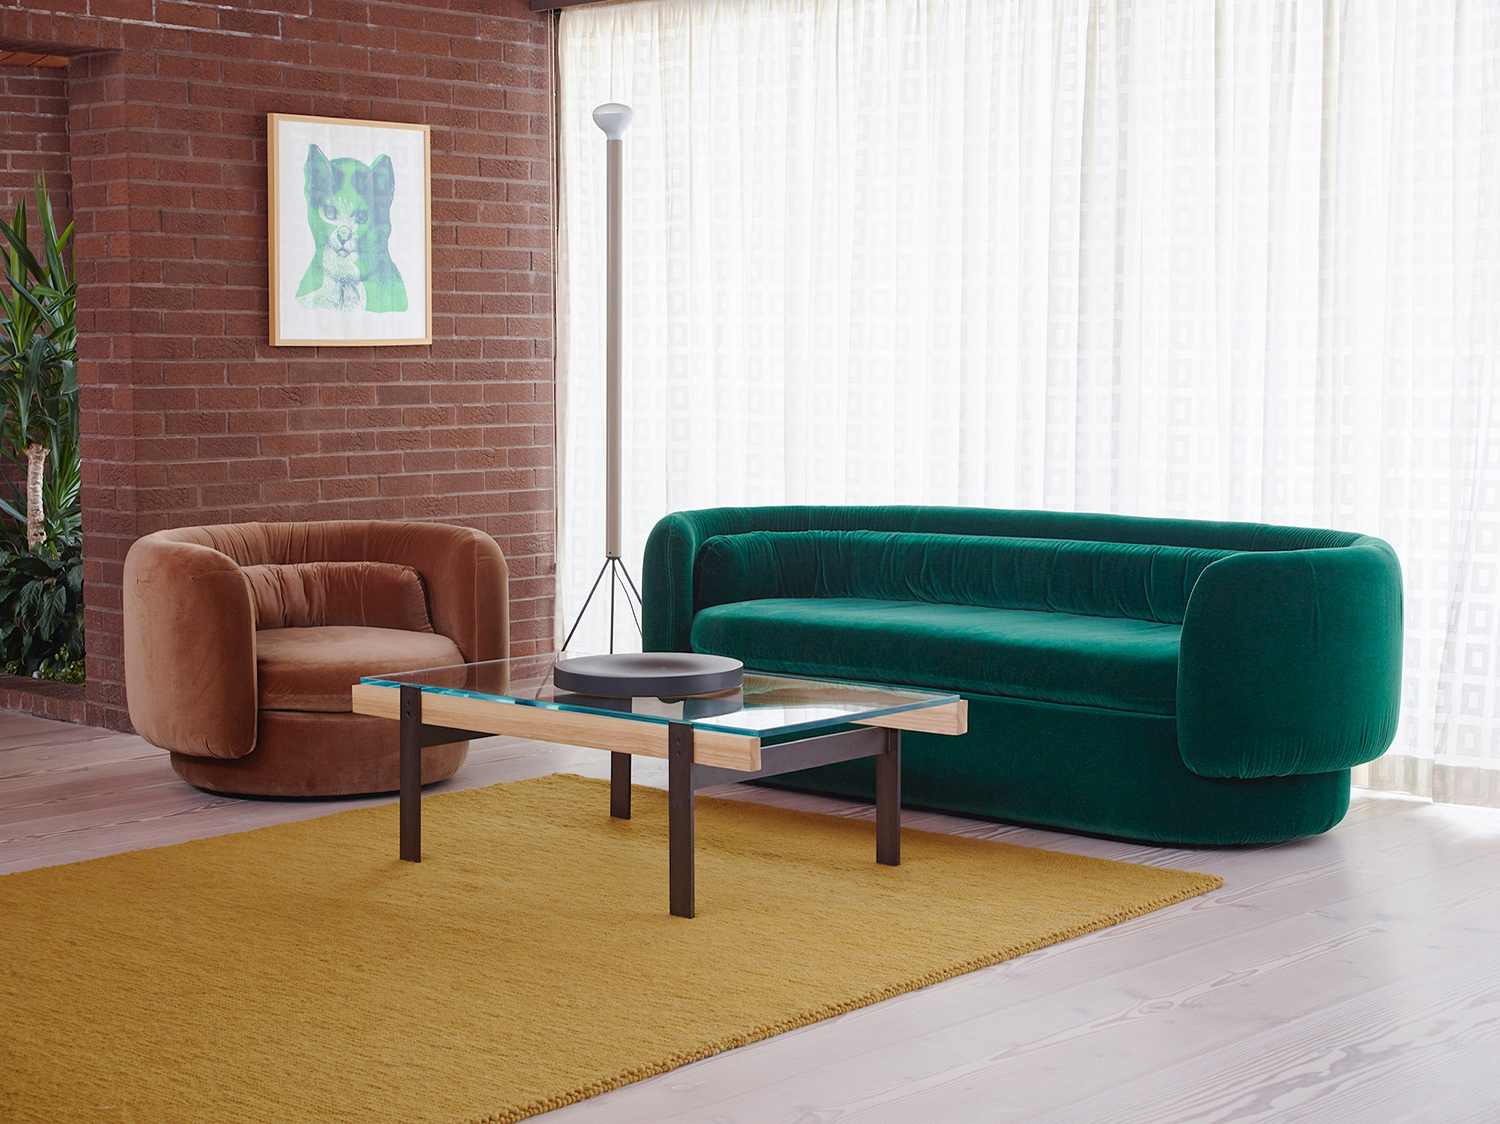 Bob & Friends The Group armchair and sofa Designed by Philippe Malouin